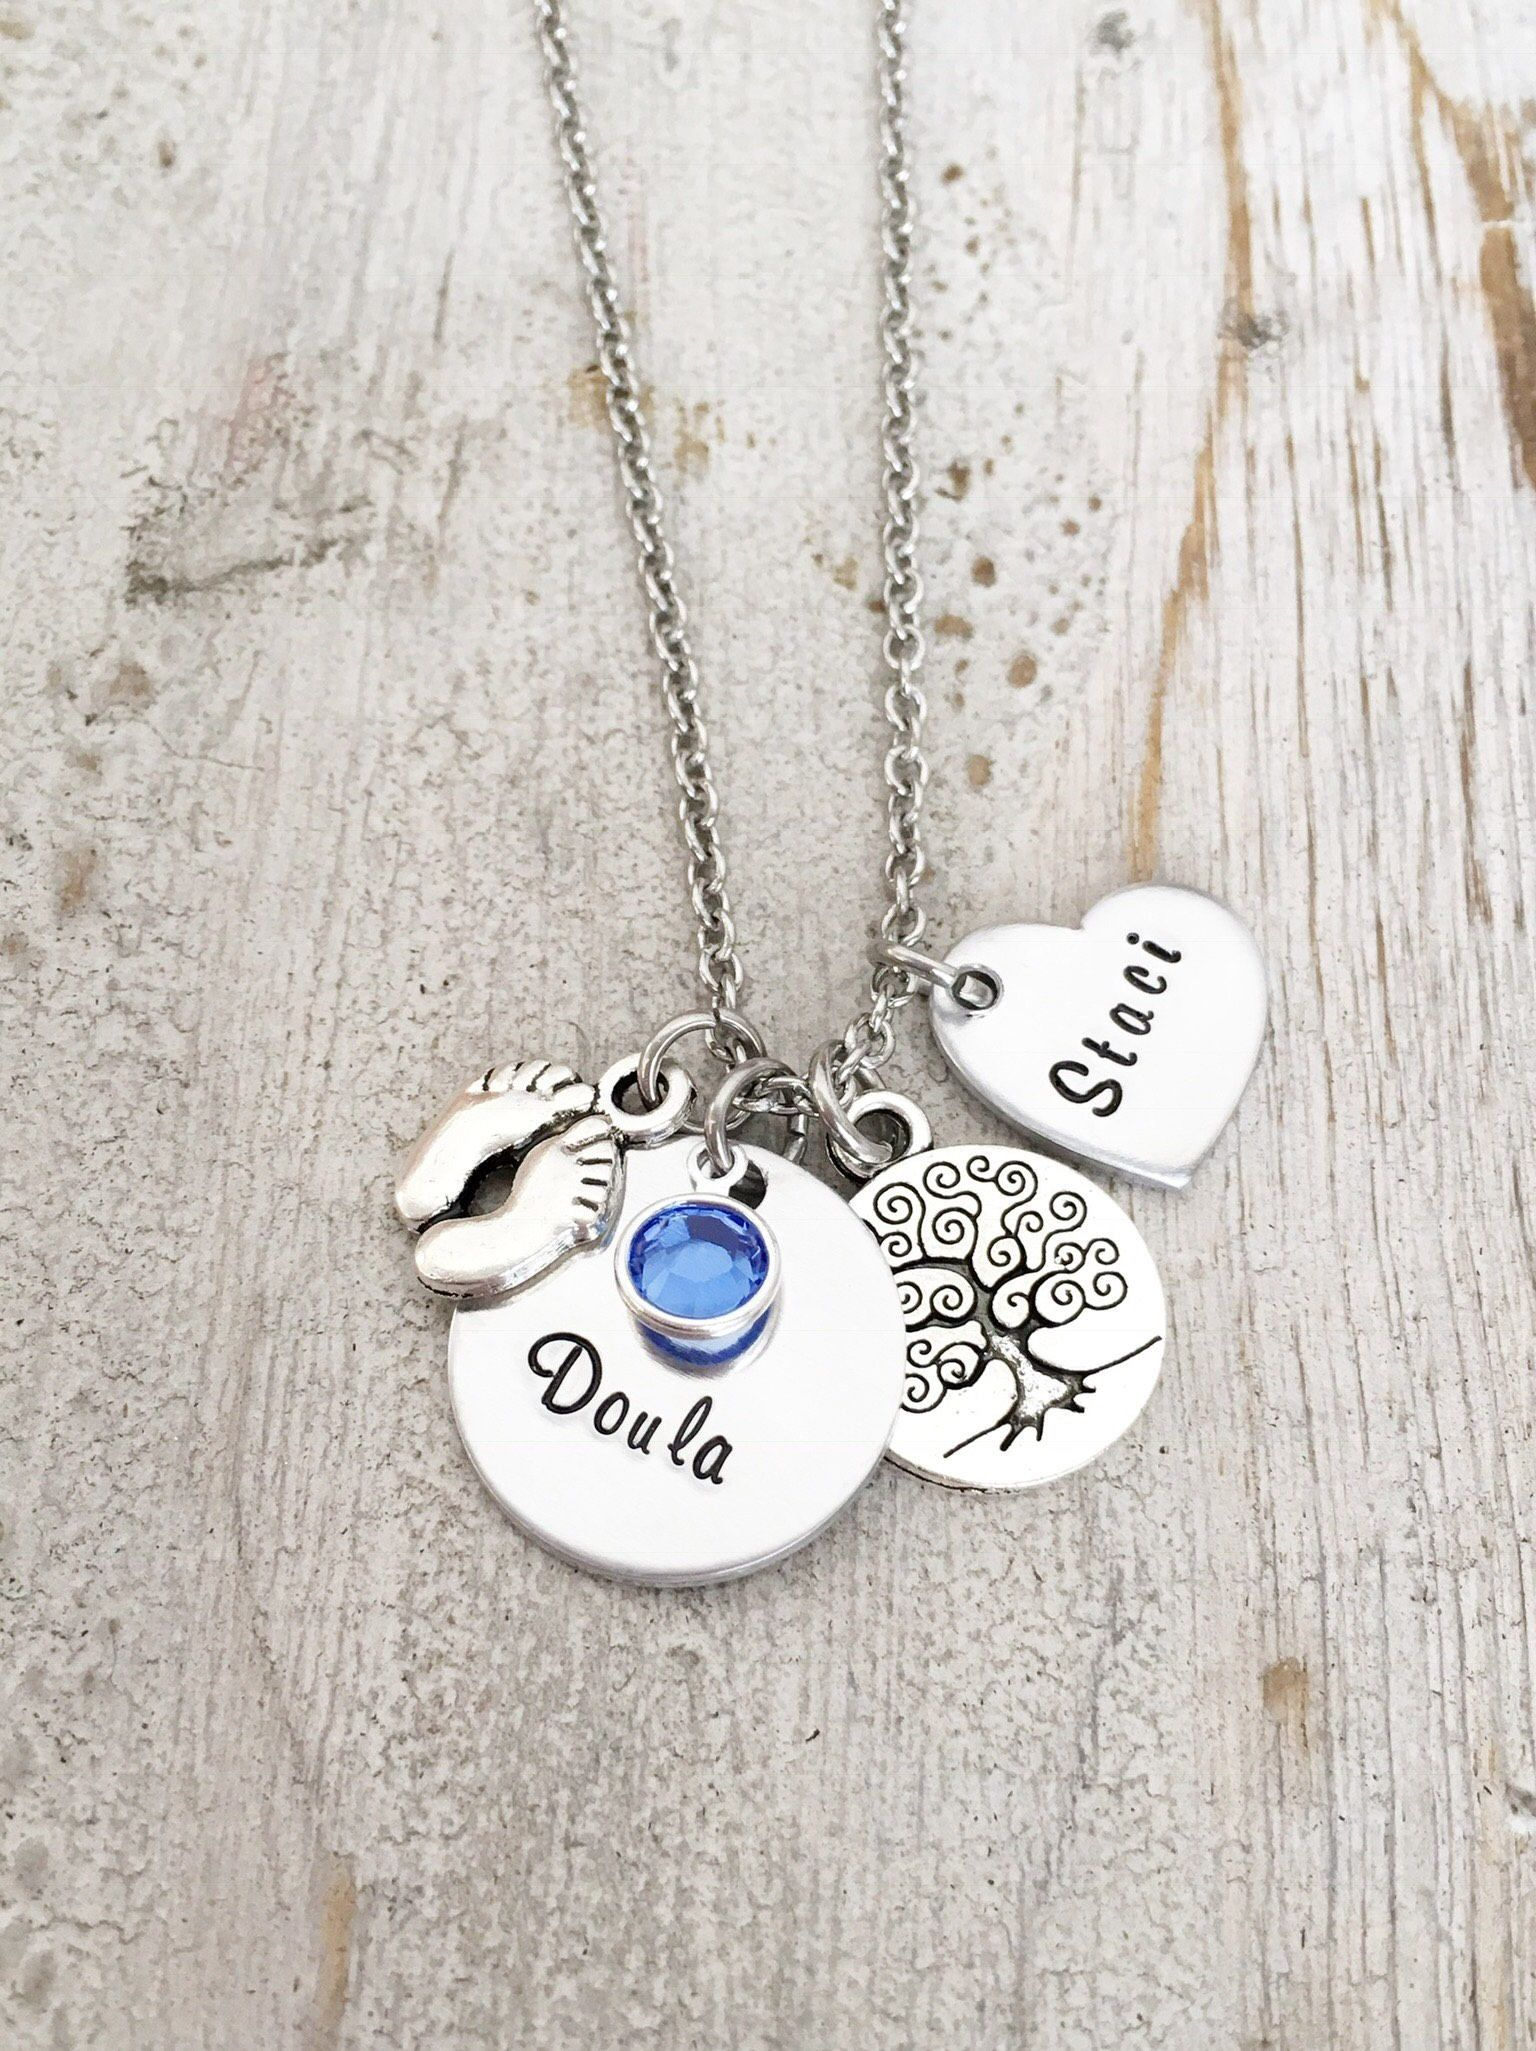 Doula necklace gift birth doula jewelry doula thank you gift doula necklace gift birth doula jewelry doula thank you gift doula jewelry gift doula certification gift nurse gift hand stamped by on etsy aiddatafo Image collections